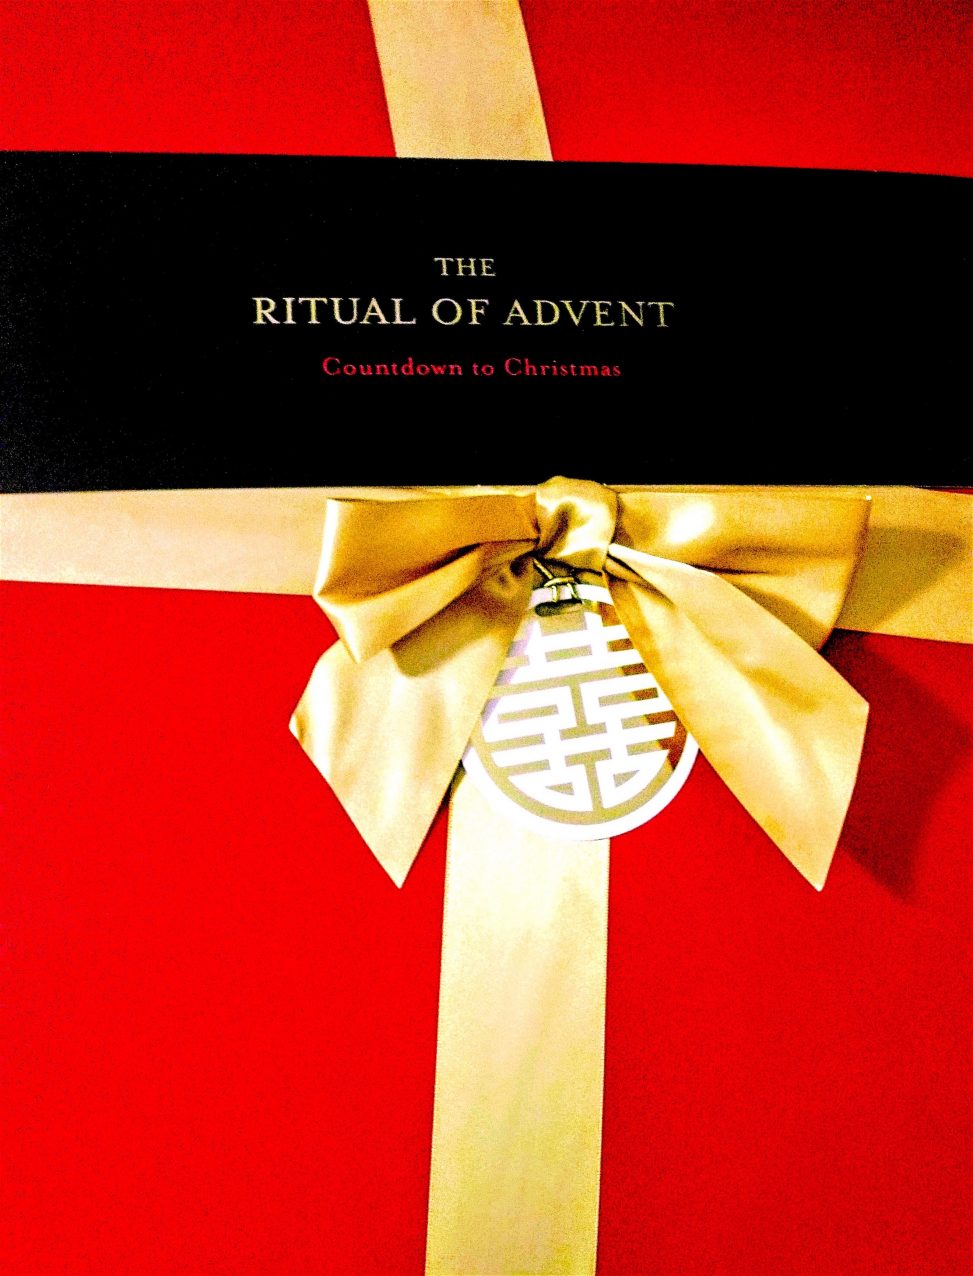 Rituals Advent Calender image